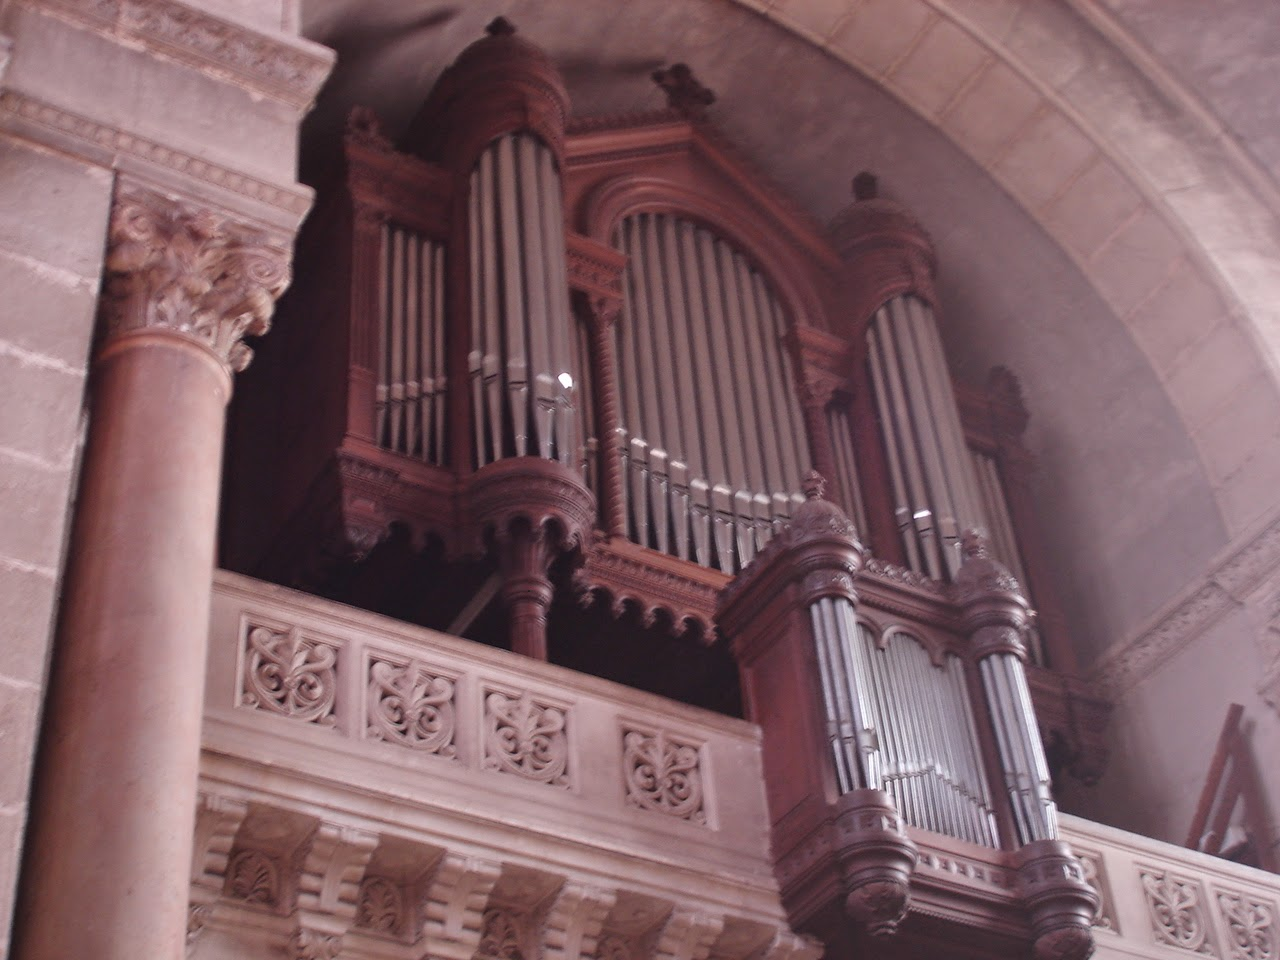 Grand orgue de la chapelle de Mongré